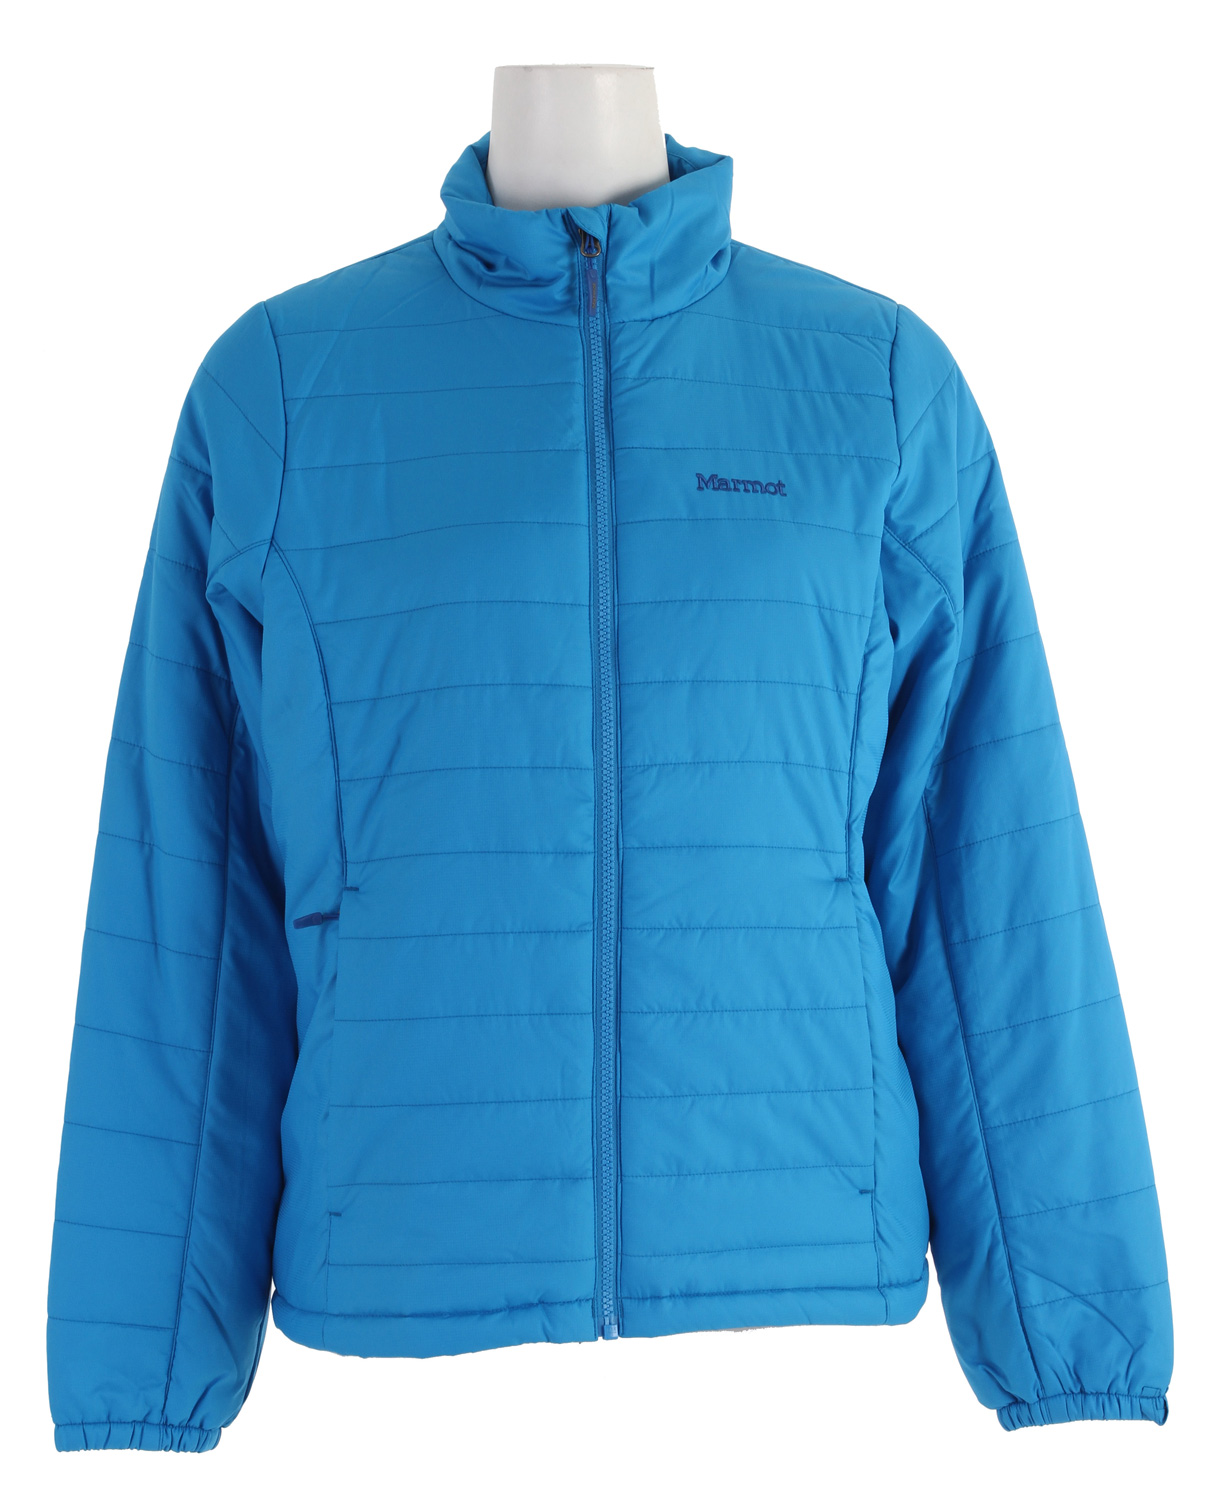 Marmot Brilliant Insulated Jacket Tahoe Blue - $83.95